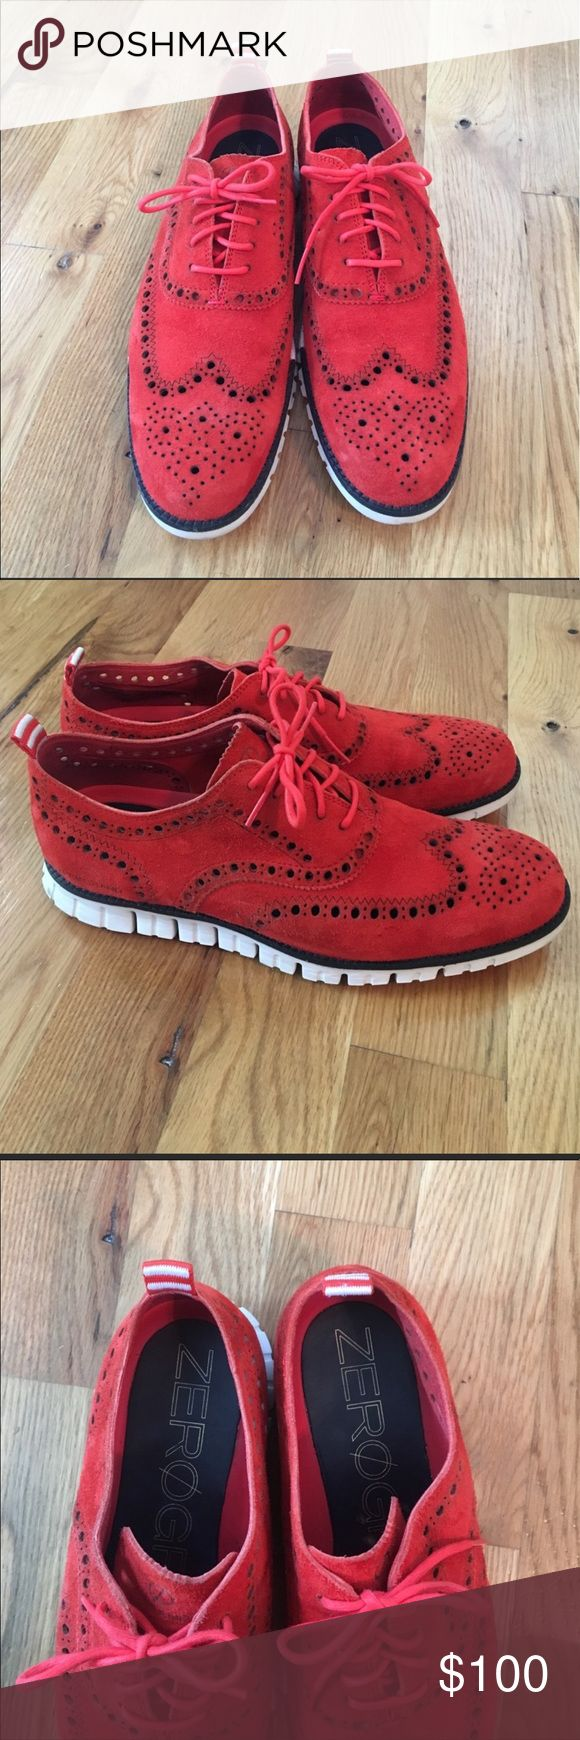 Like new red suede Cole Haan Zero Grand shoes Like new red poppy suede Cole Haan Zero Grand shoes. Very comfy and get lots of compliments. I usually wear a size 10, and I thought these would fit.m, but they're a little snug, so I need to sell. Size 9.5 Cole Haan Shoes